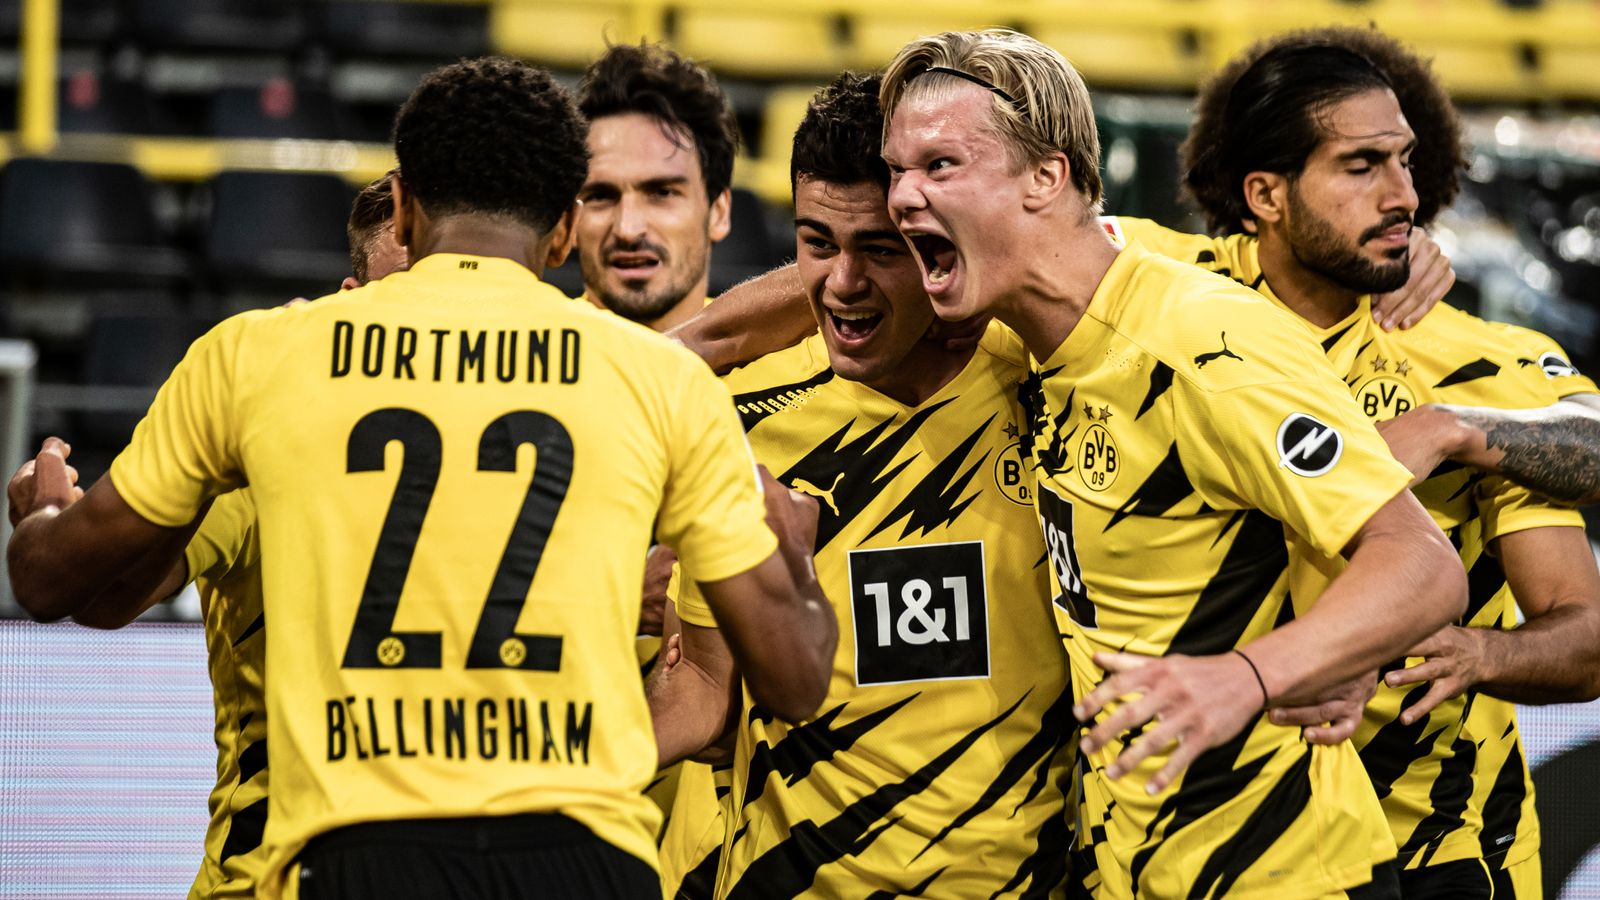 Jadon Sancho shines as Borussia Dortmund start Bundesliga season in style - European round-up